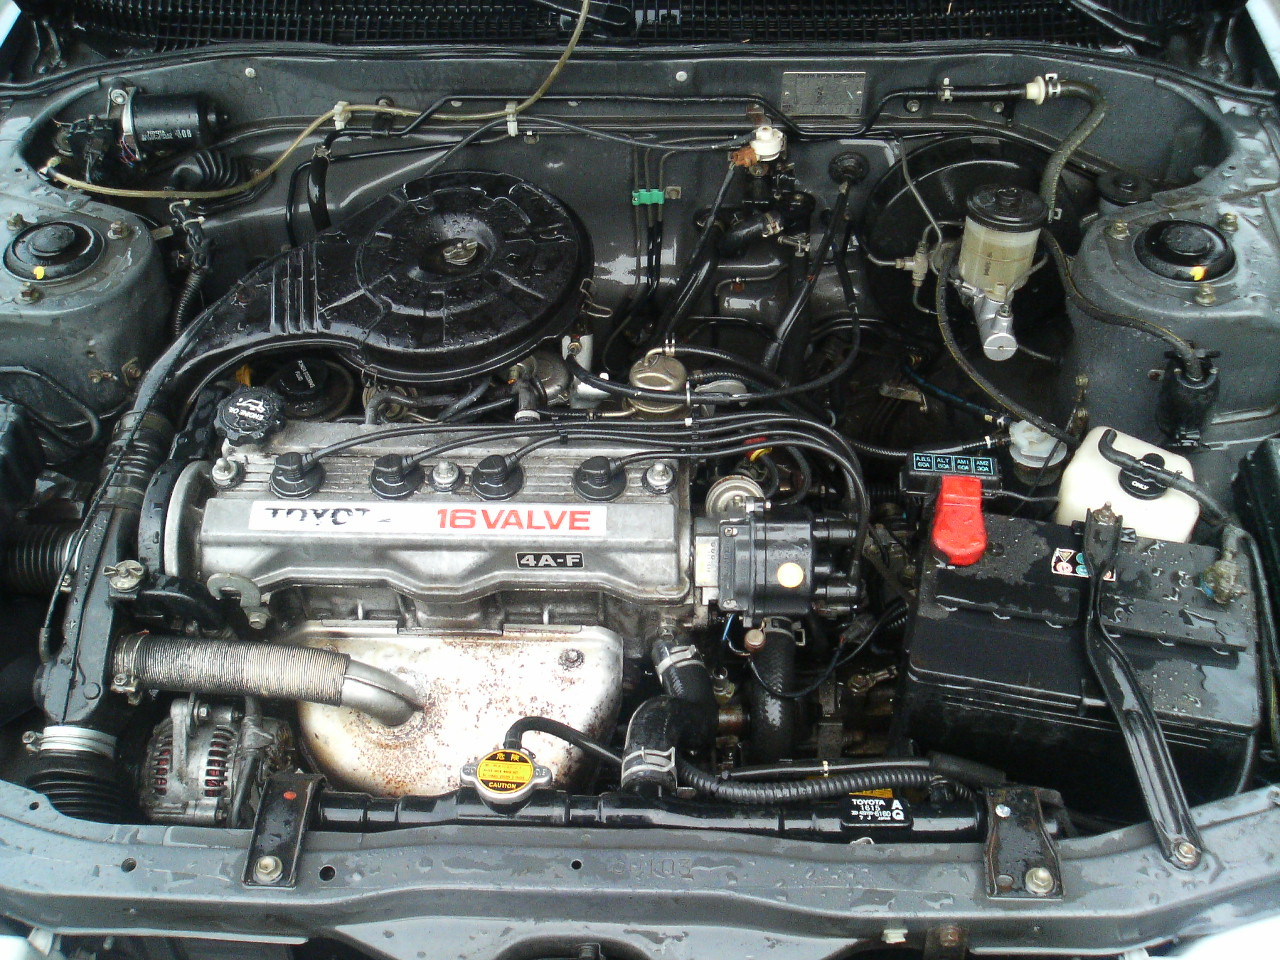 file:toyota 4a-f engine jpg